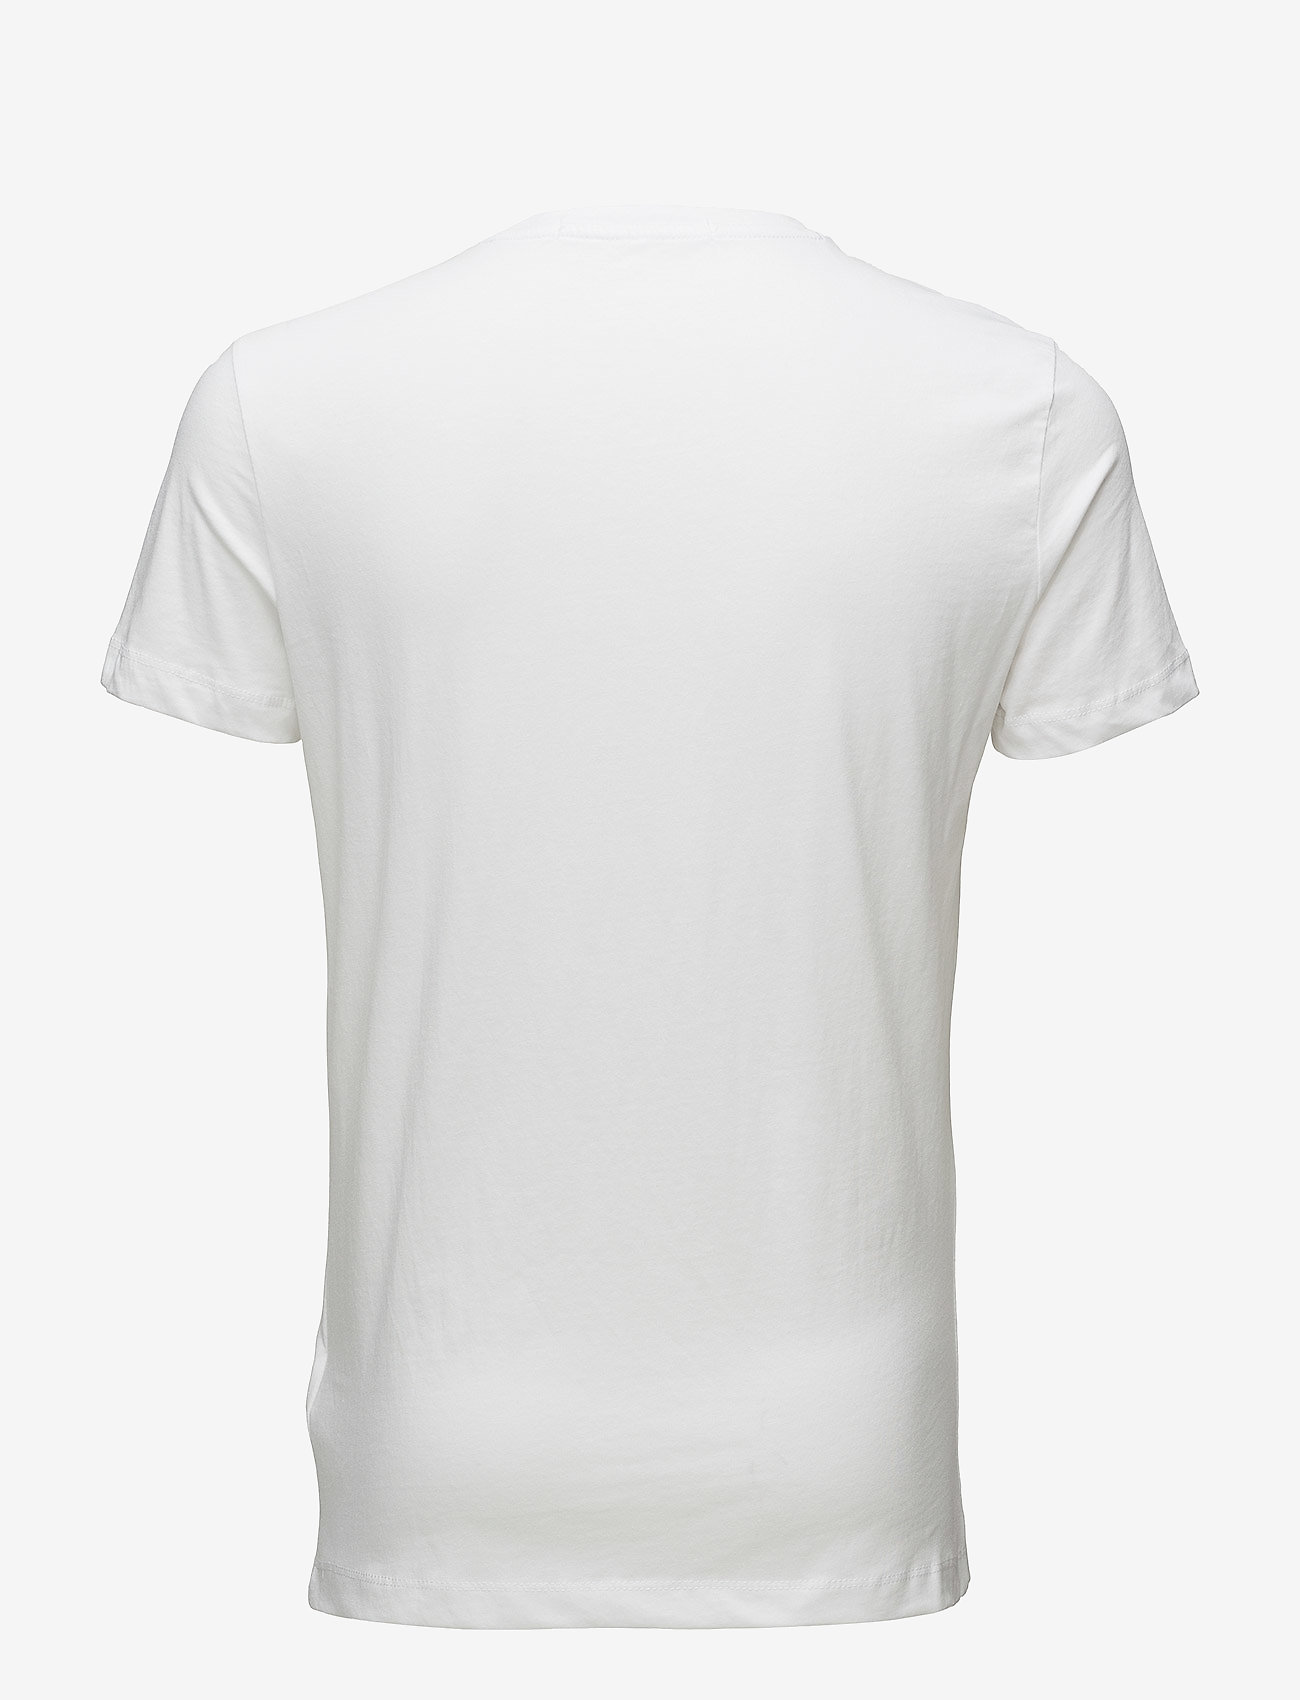 Calvin Klein Jeans - CORE INSTITUTIONAL LOGO SLIM TEE - kortermede t-skjorter - bright white - 1